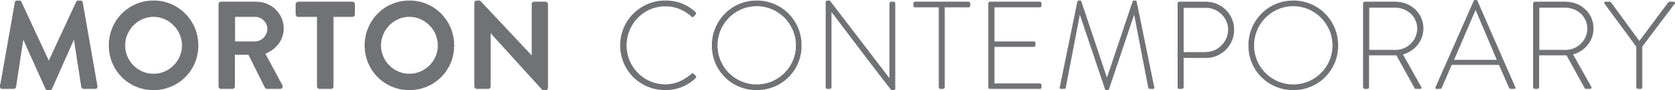 Morton Contemporary Logo